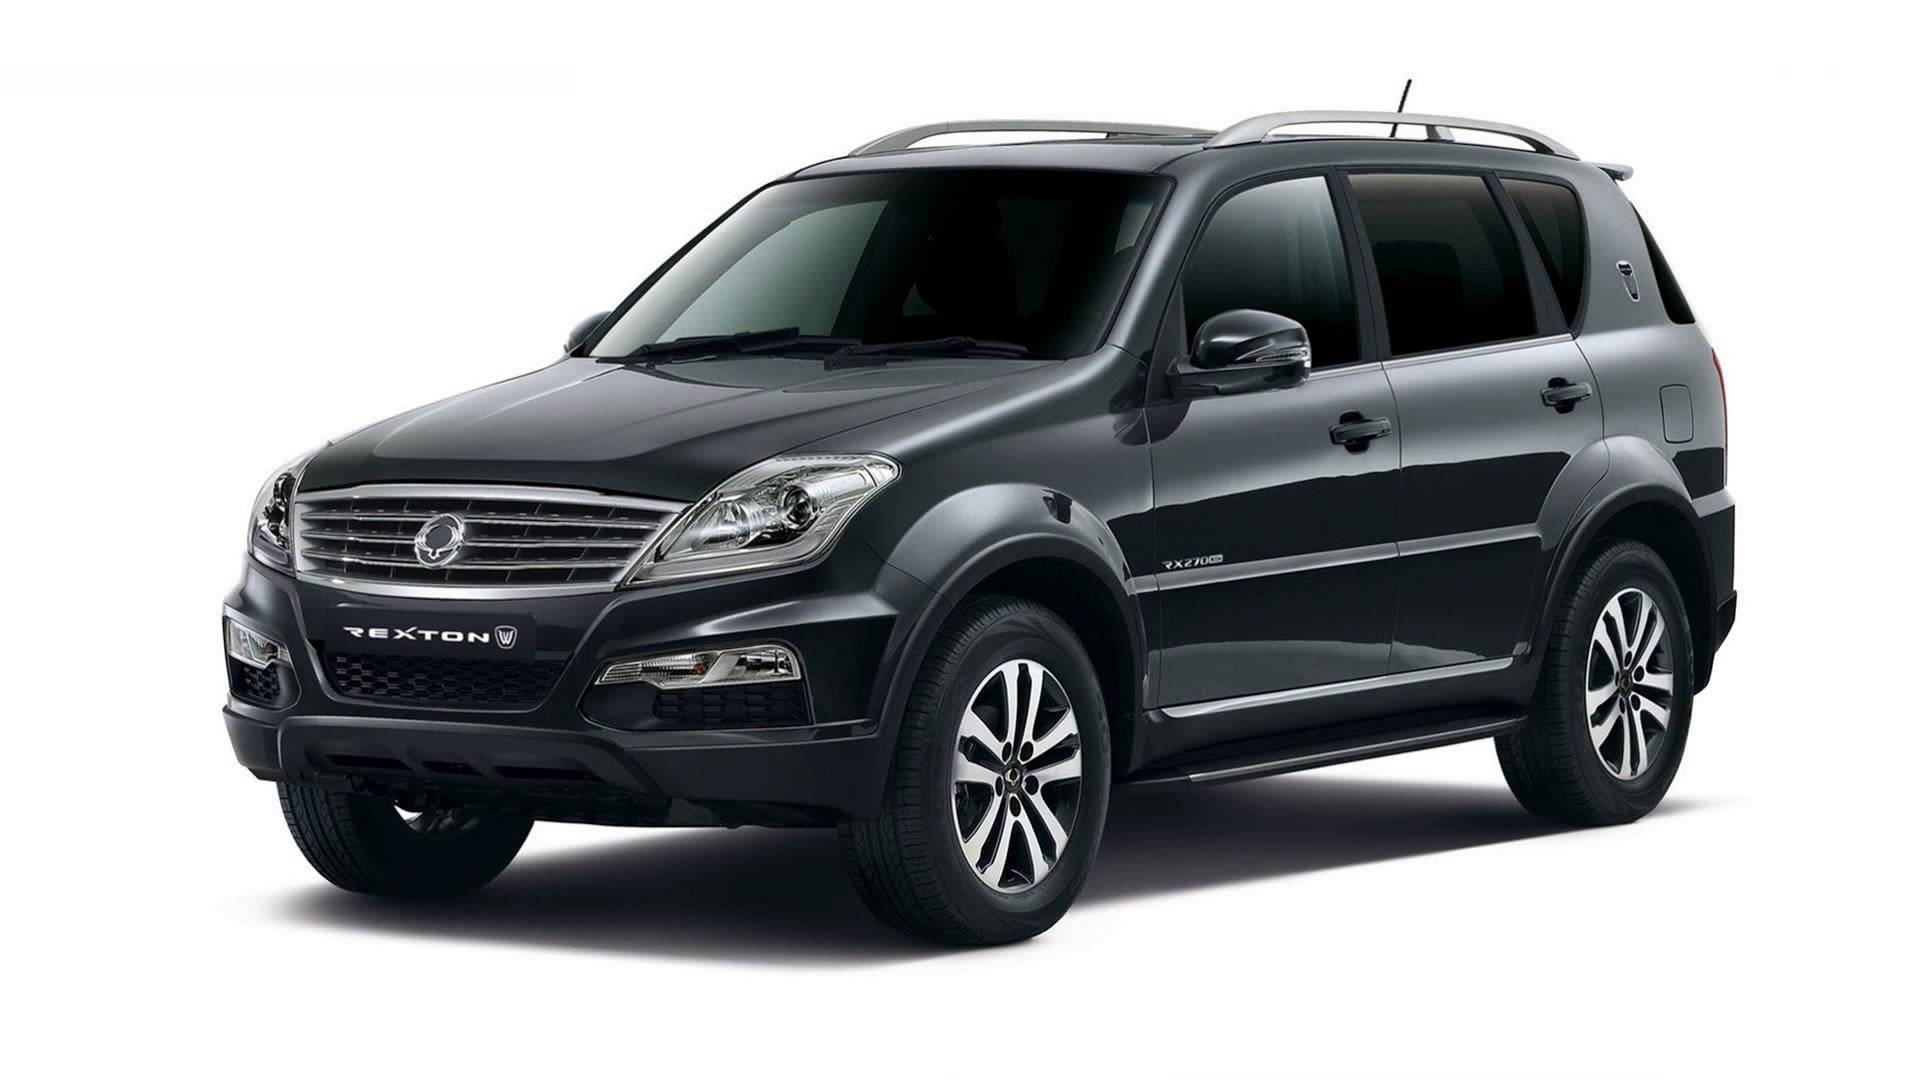 2015 Ssangyong Kyron ii – pictures, information and specs - Auto ...